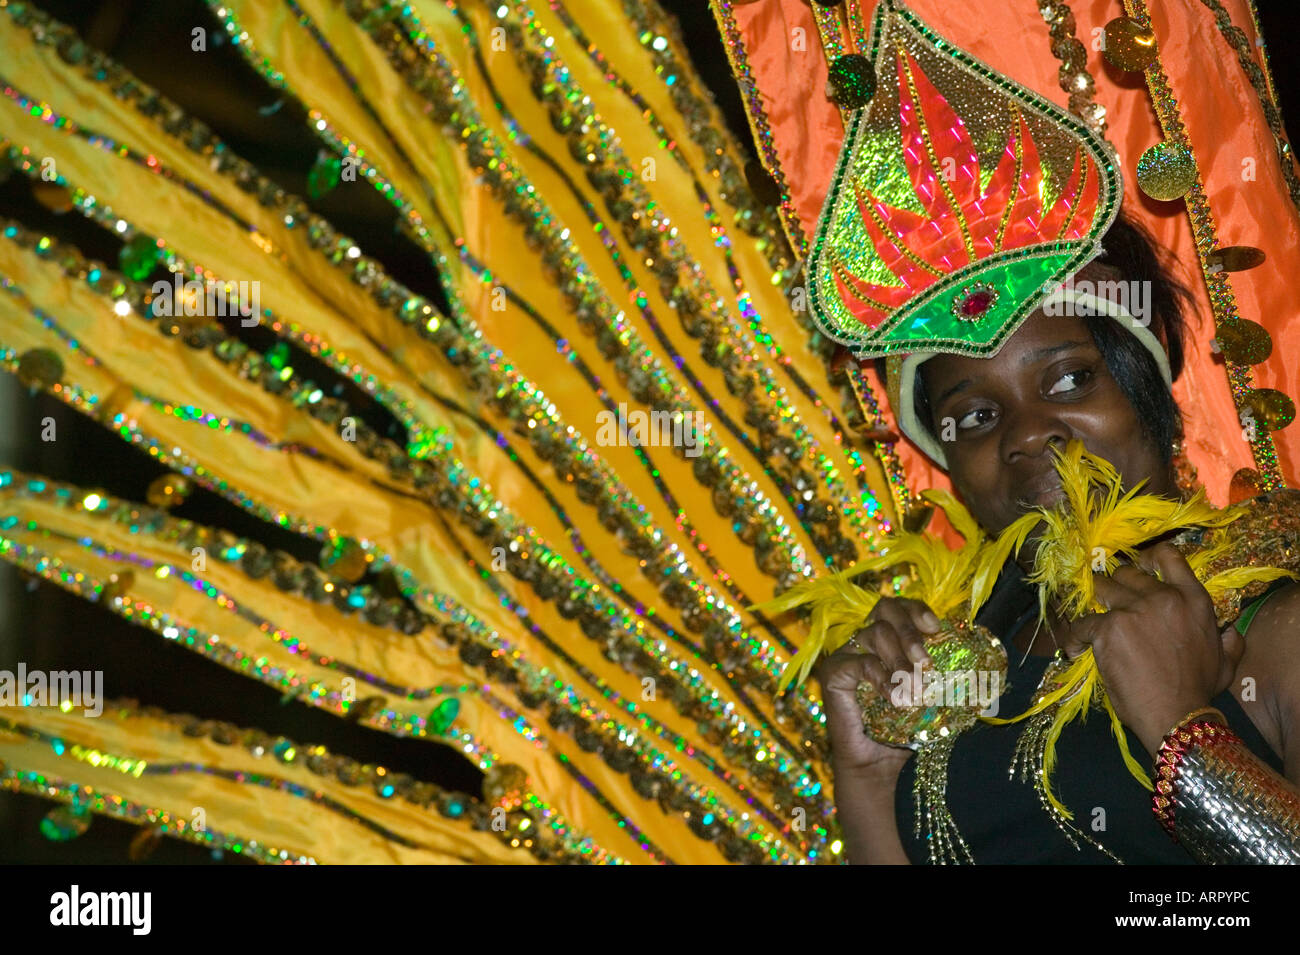 Grand Carnival Costume Splash - Notting Hill Carnival Costume Preview at Alexandra Palace - Stock Image